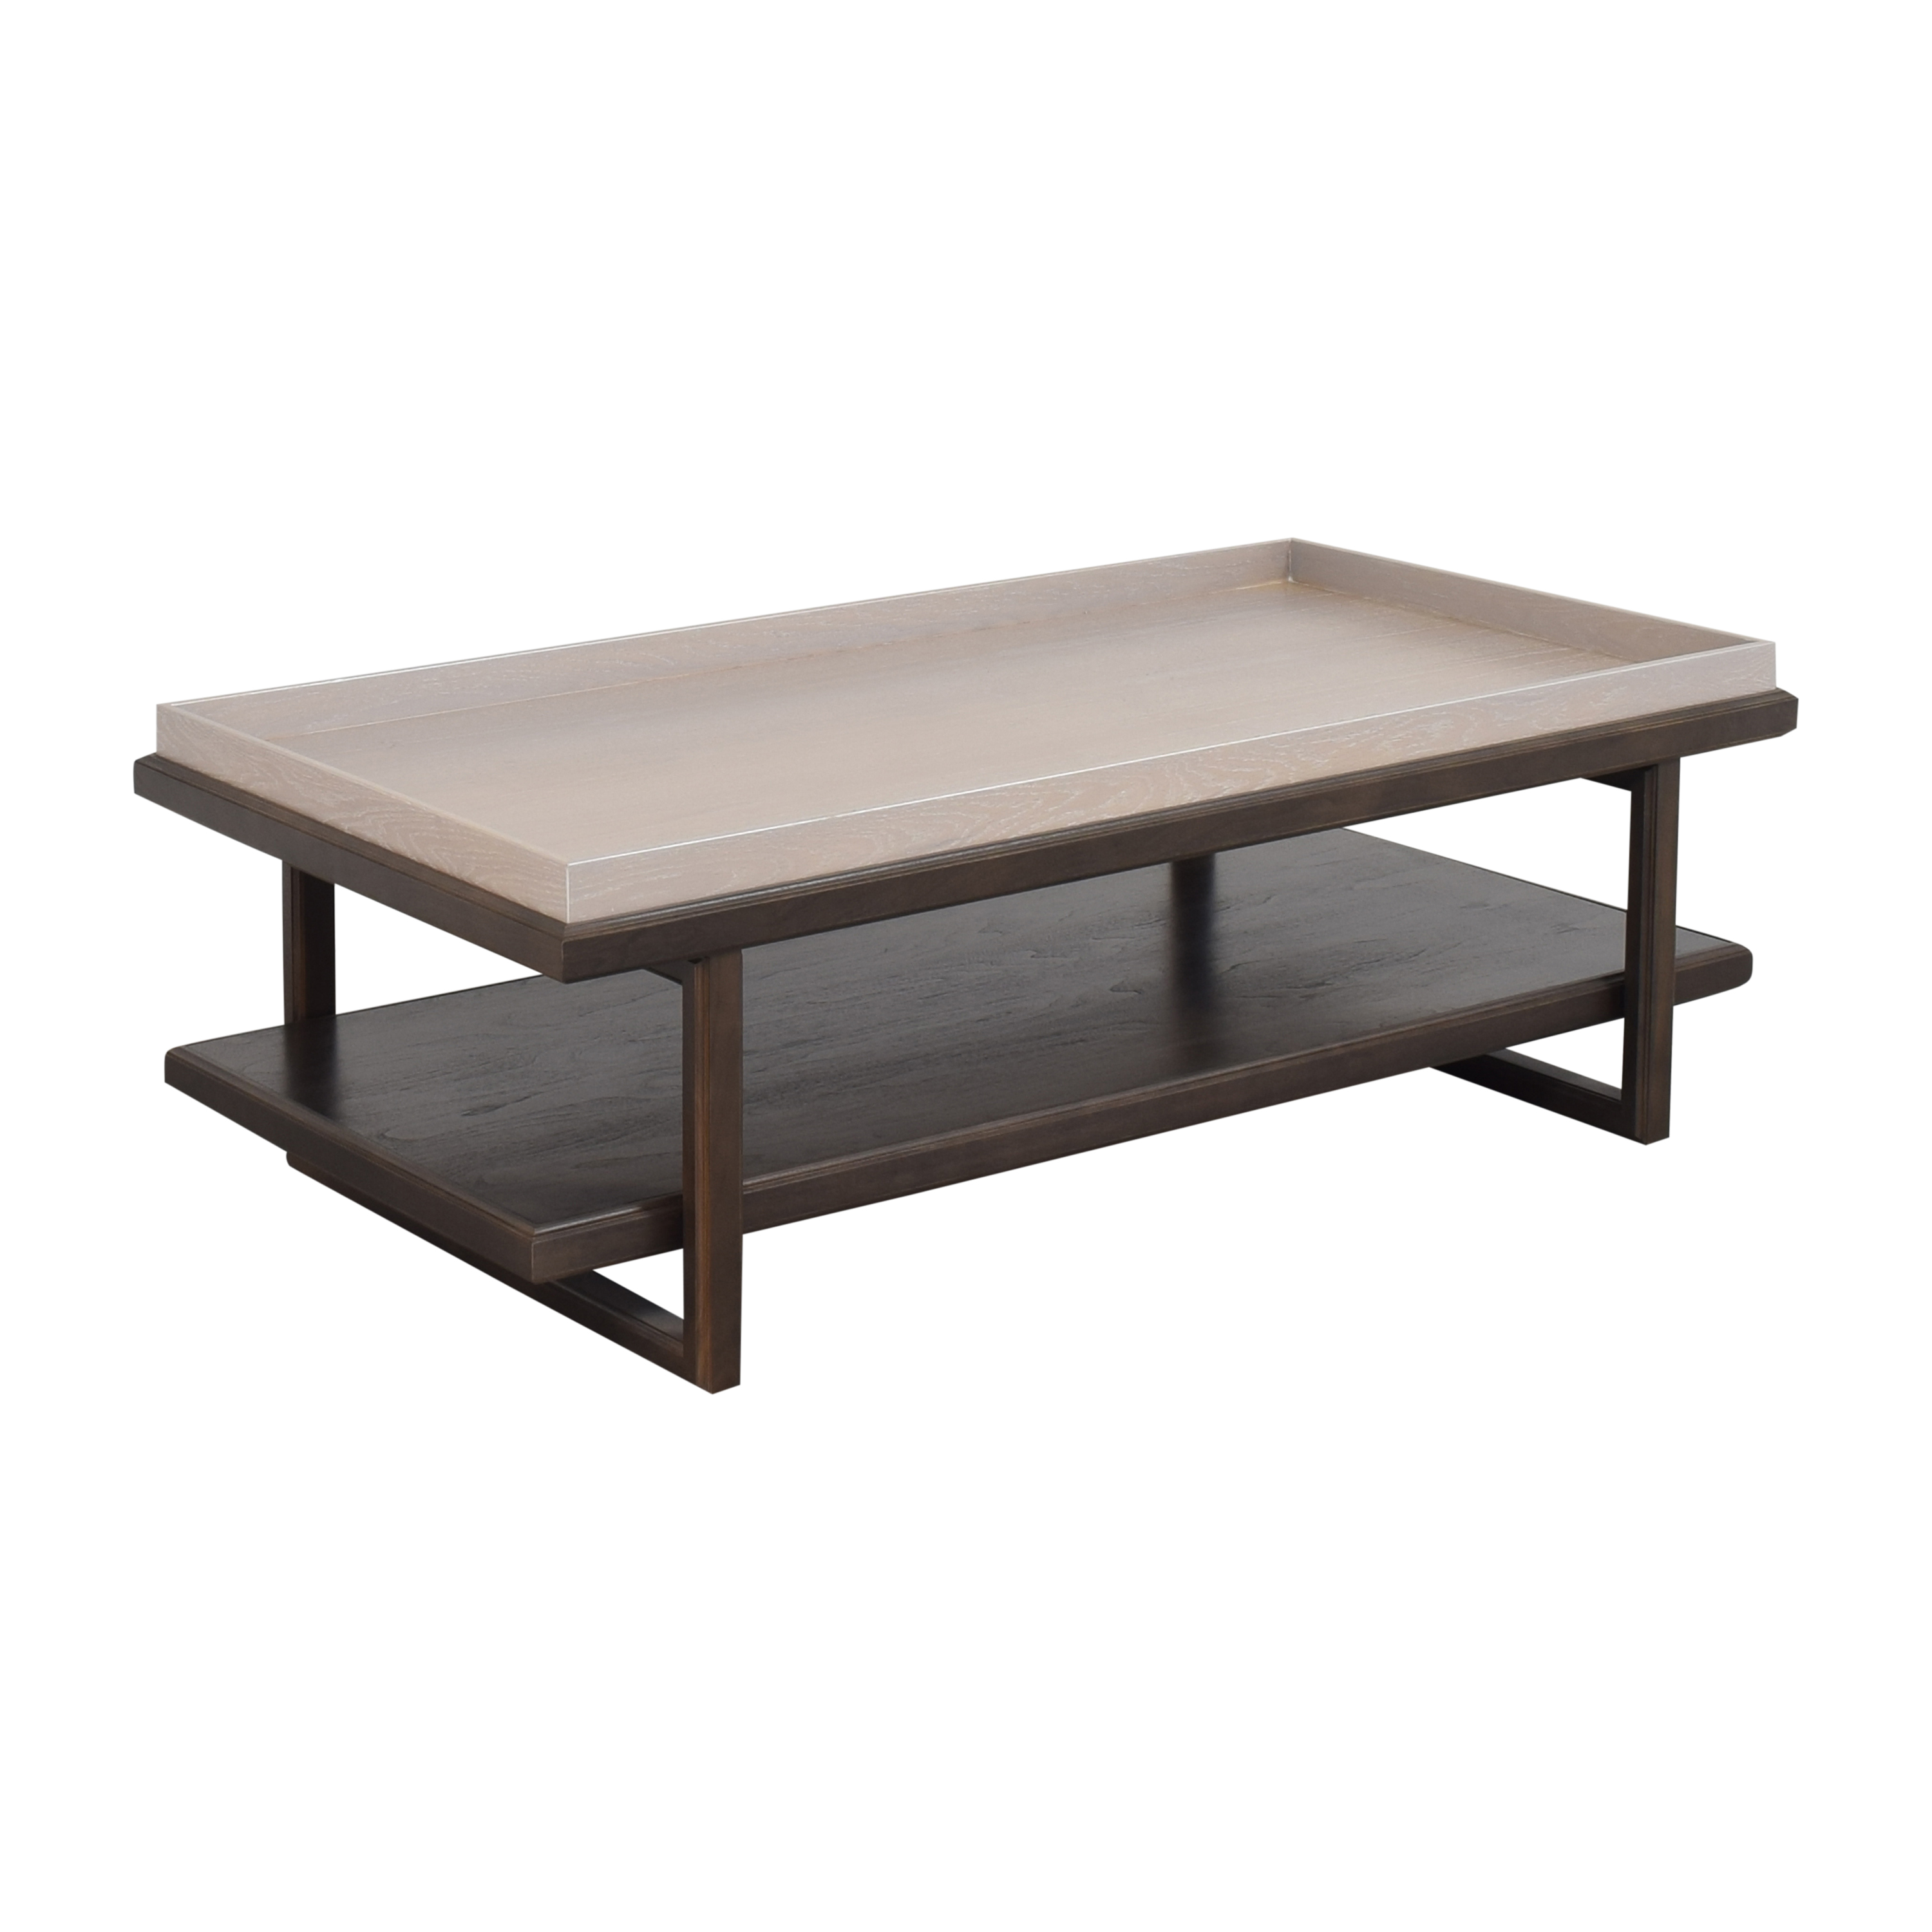 The New Traditionalists The New Traditionalists Tray Top Coffee Table on sale